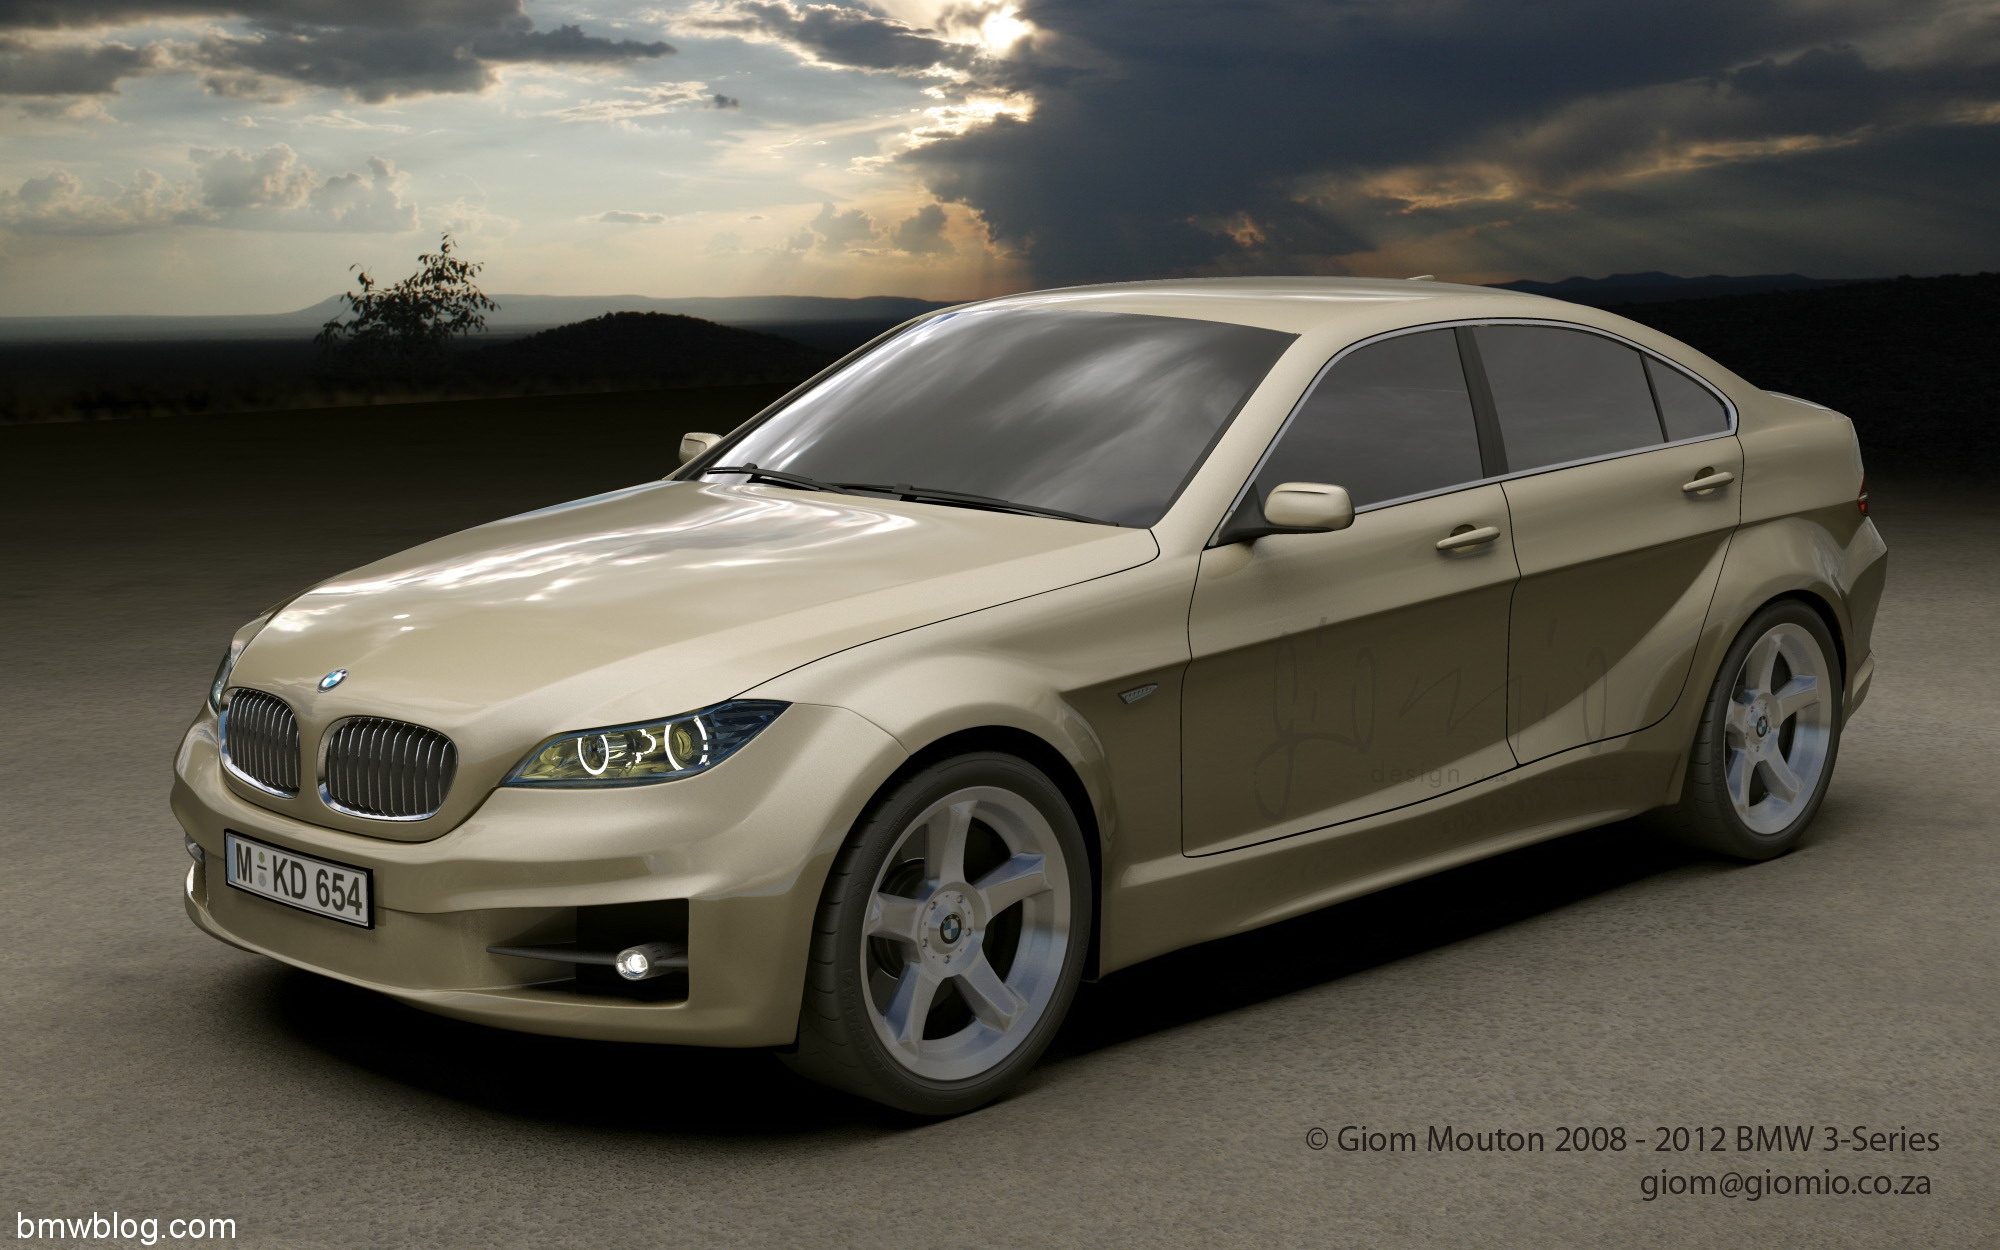 BMW I Review Amazing Pictures And Images Look At The Car - 2012 bmw 530i